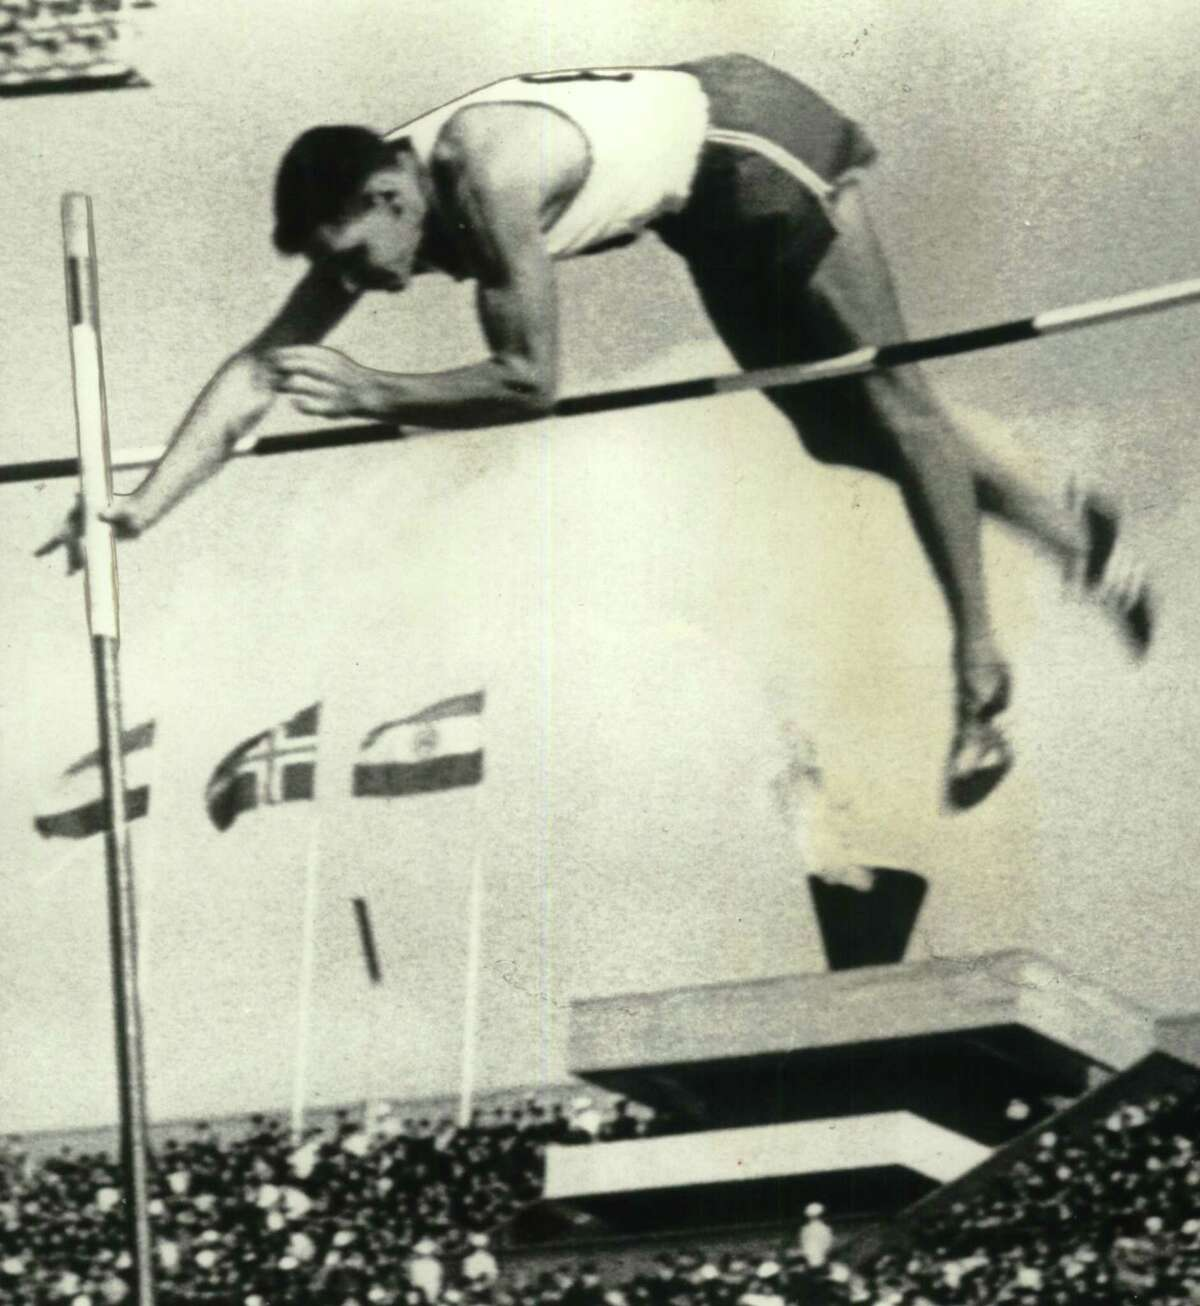 Pole vaulter Fred Hansen clears the bar in the early going during the 1964 Olympic Games, which event he won dramatically.